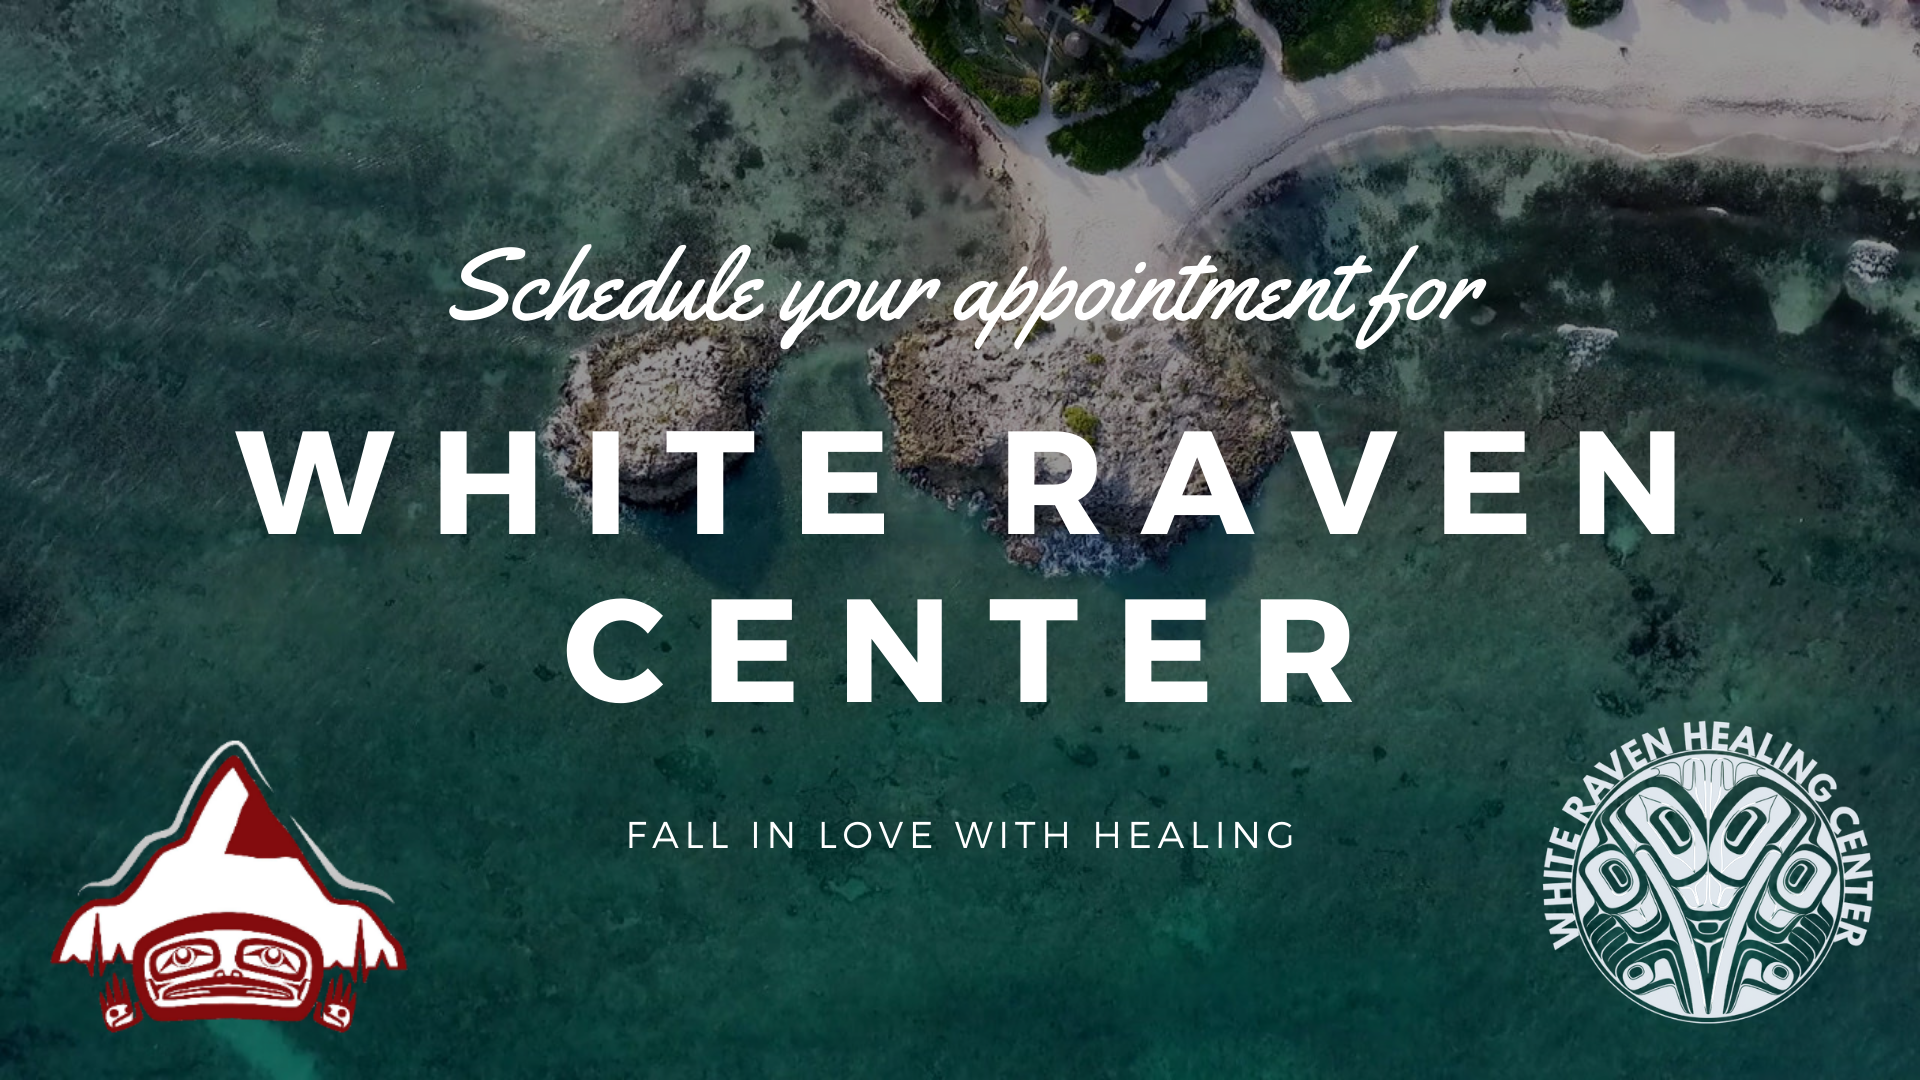 Schedule your appointment for